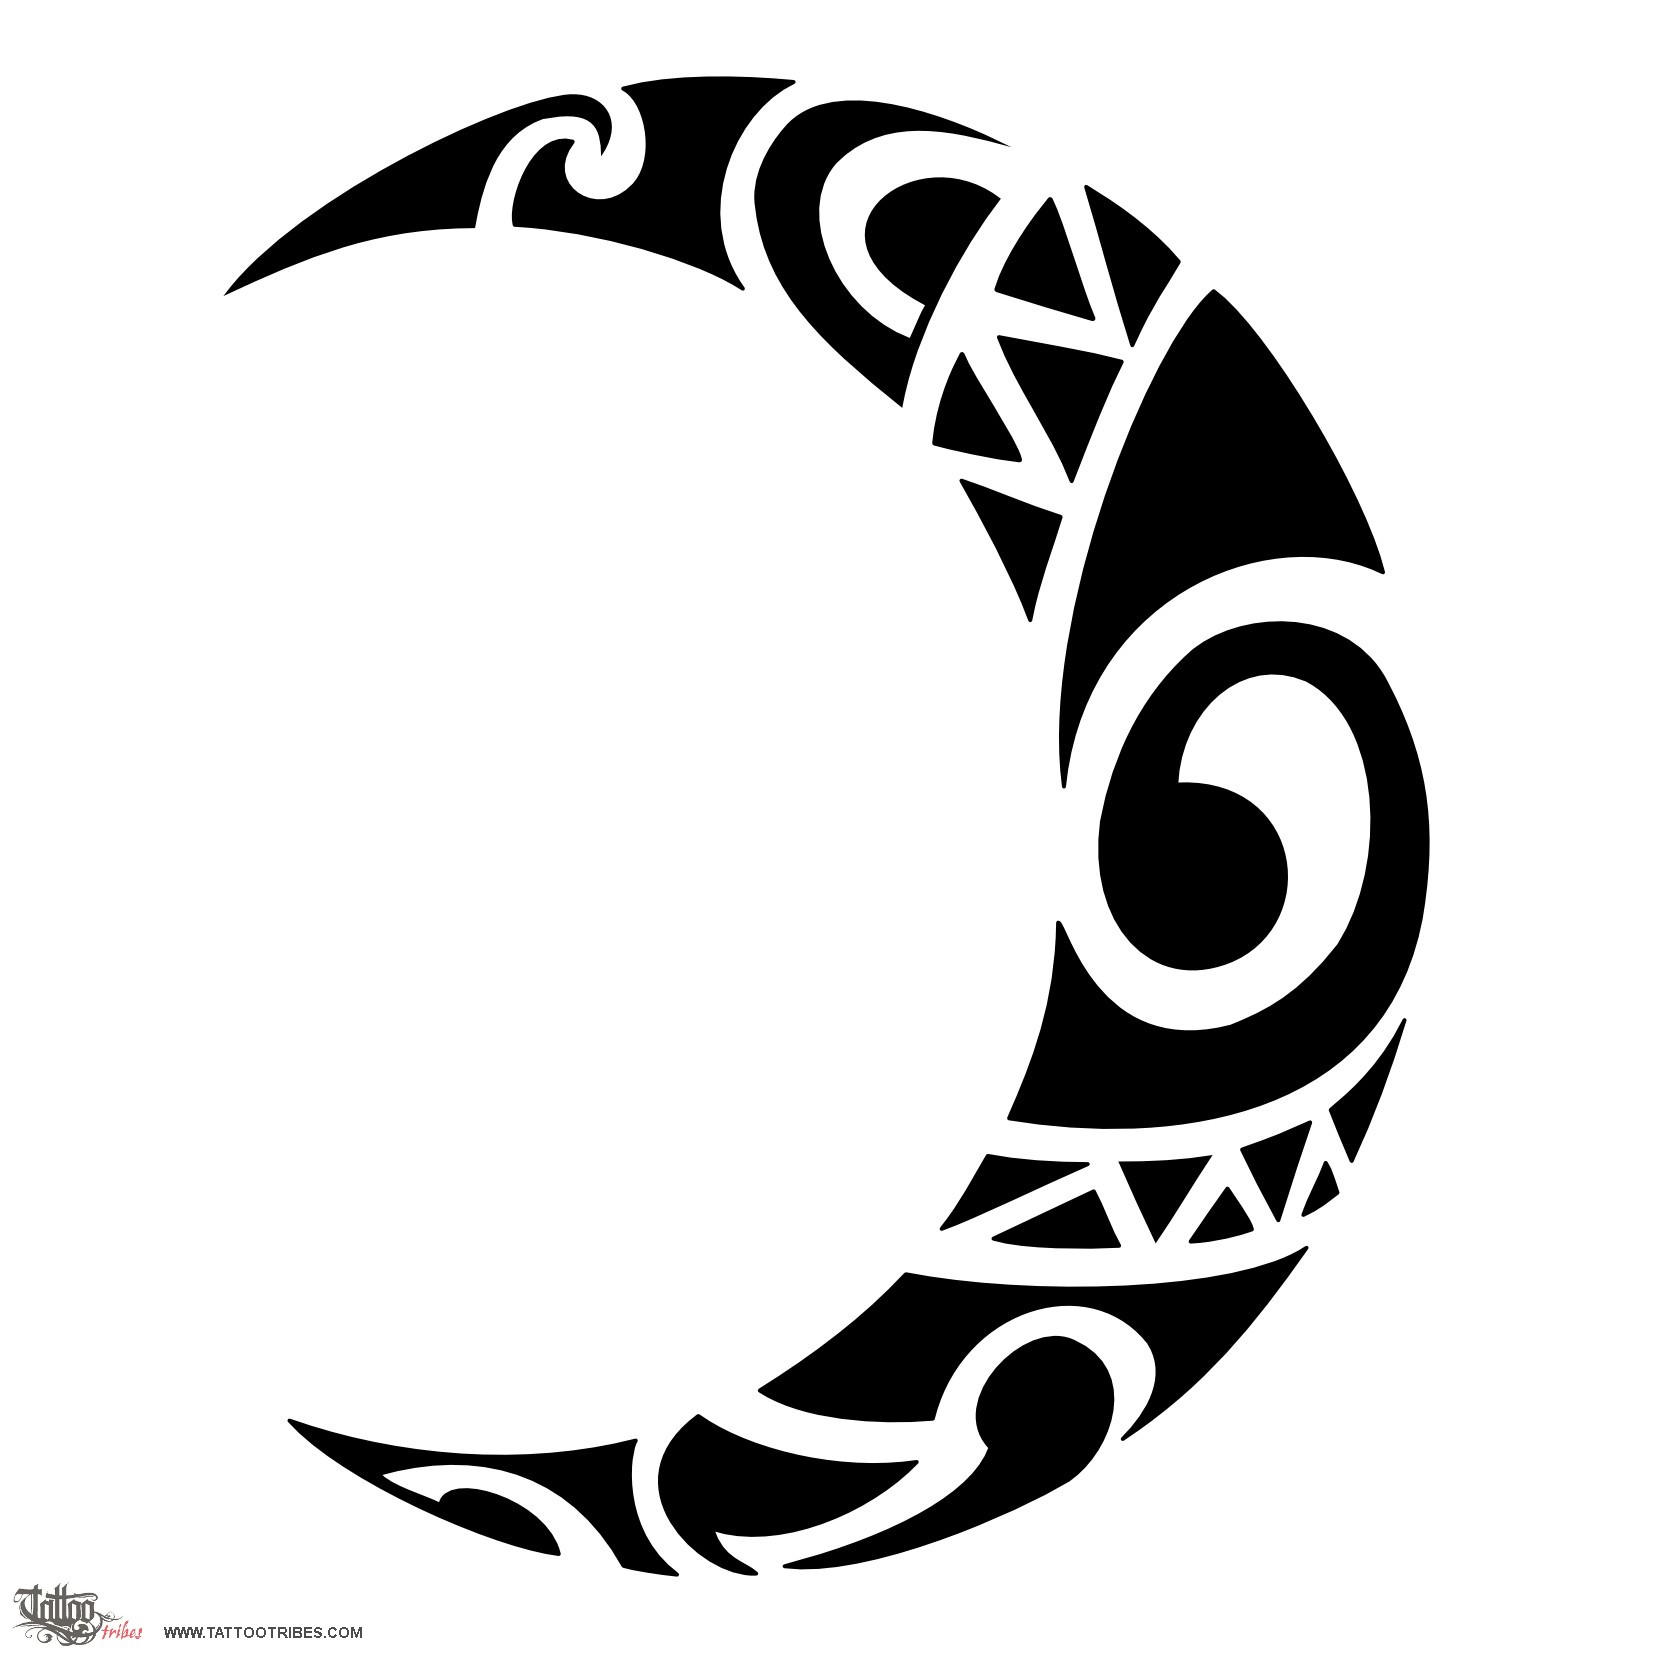 Moon tattoo clipart picture freeuse 43+ Tribal Moon Tattoos picture freeuse